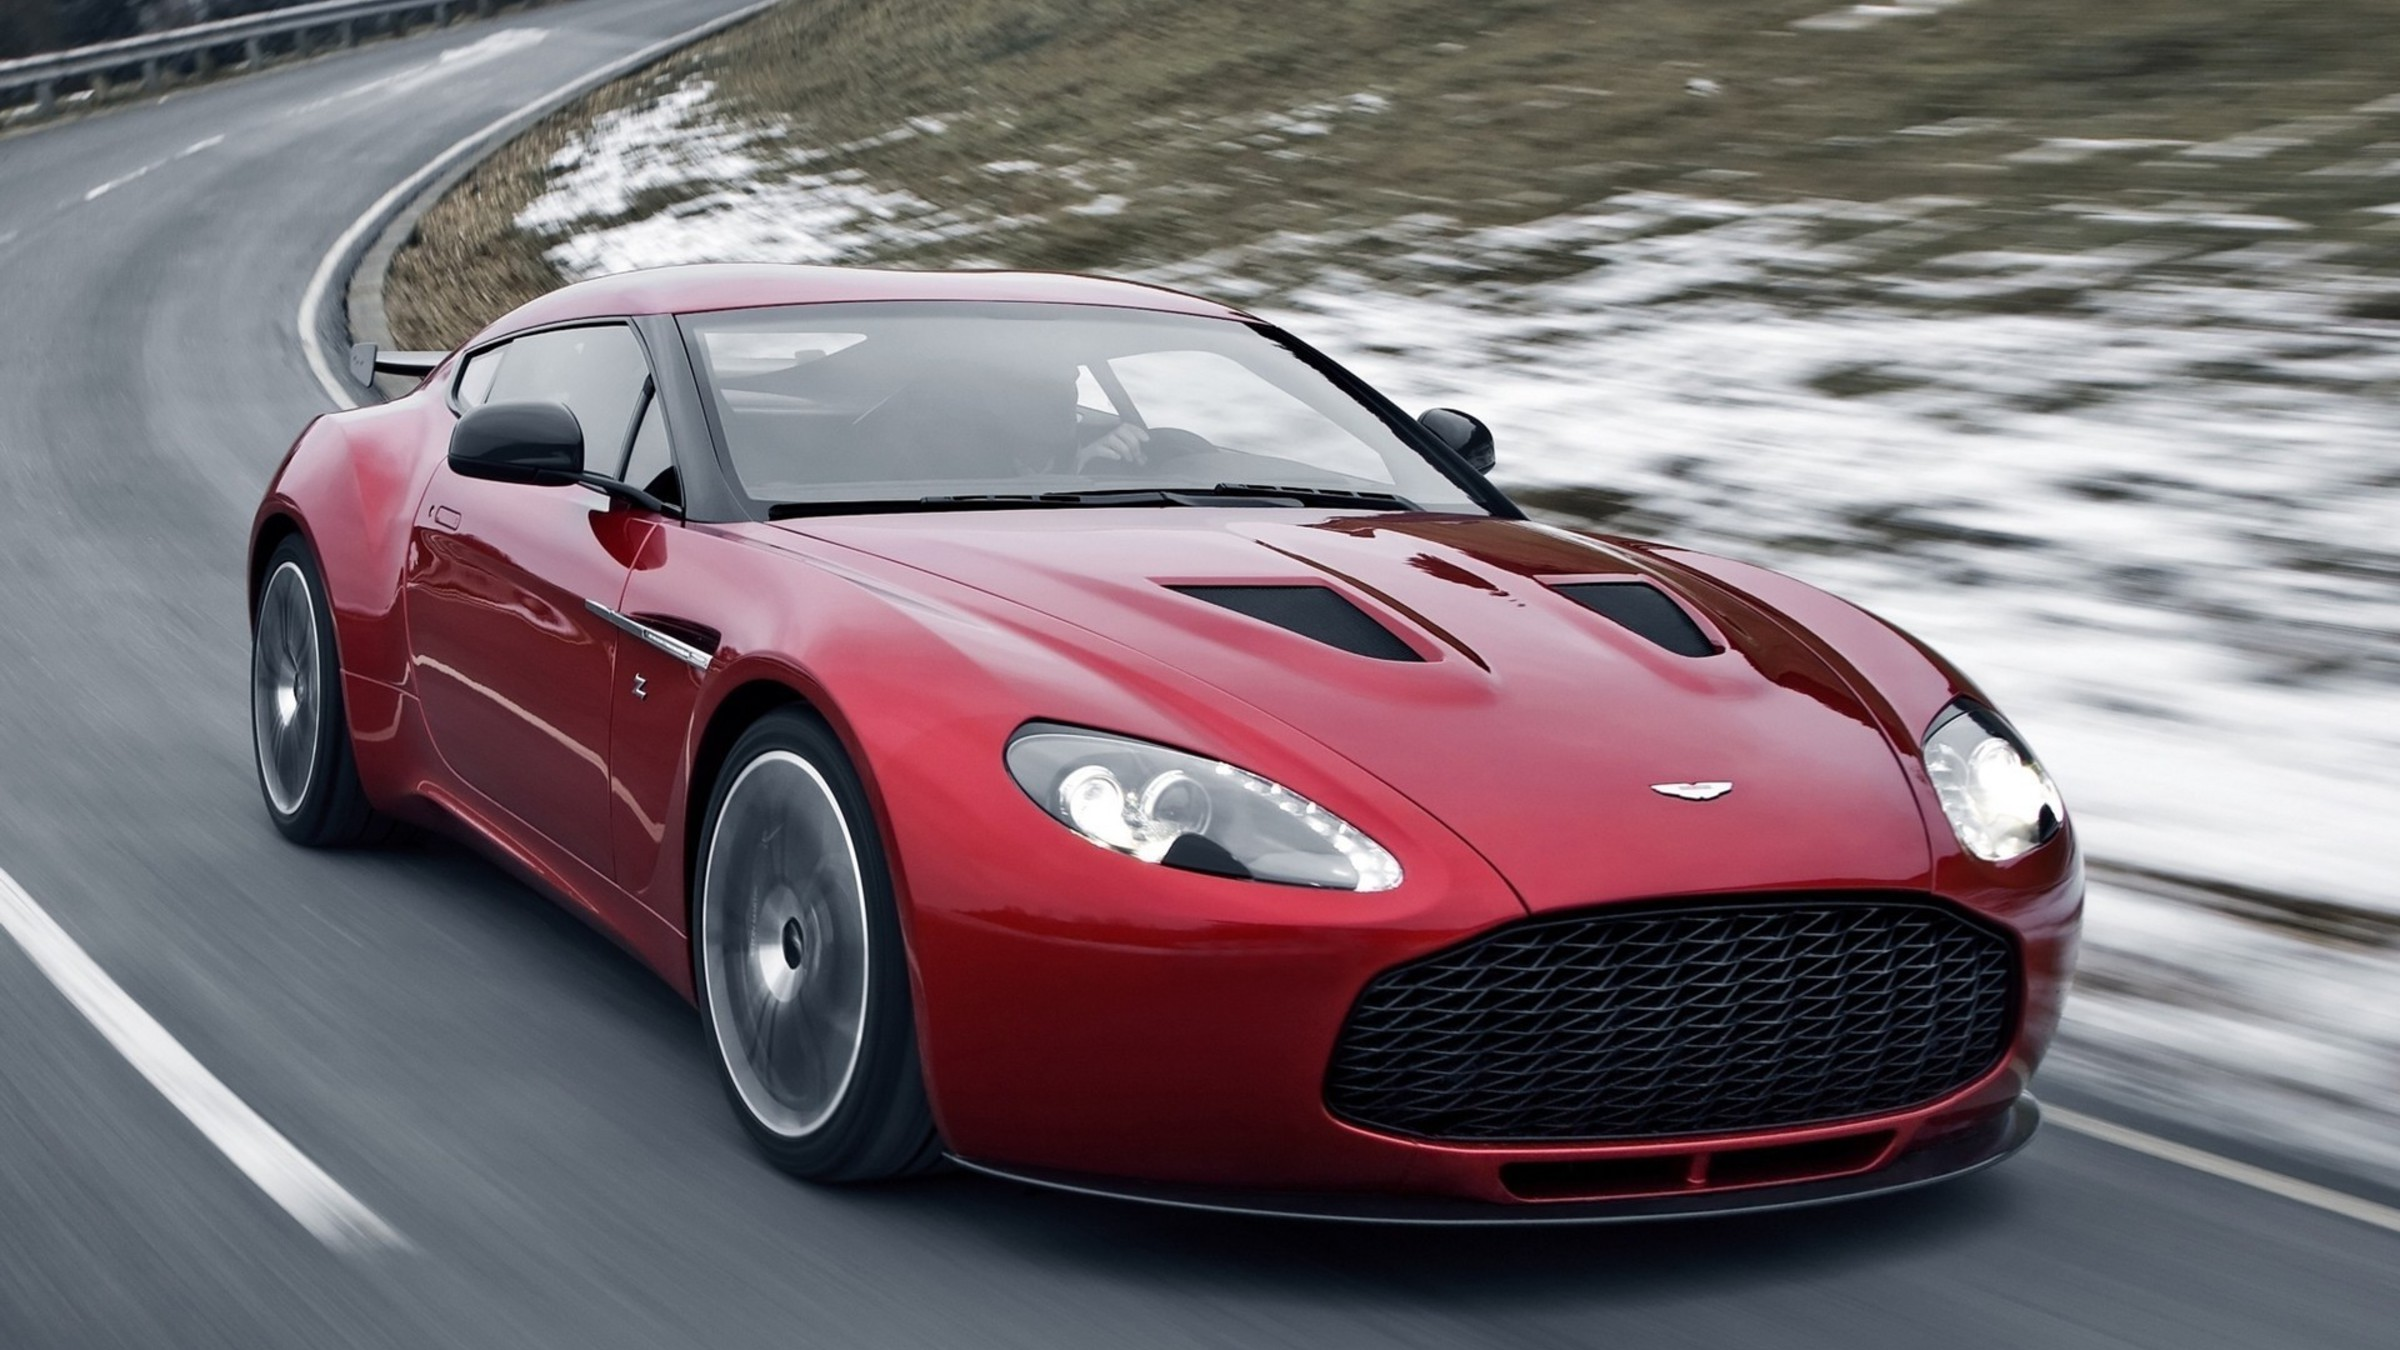 Aston Martin Zagato Cars Supercars Wallpaper Allwallpaper In